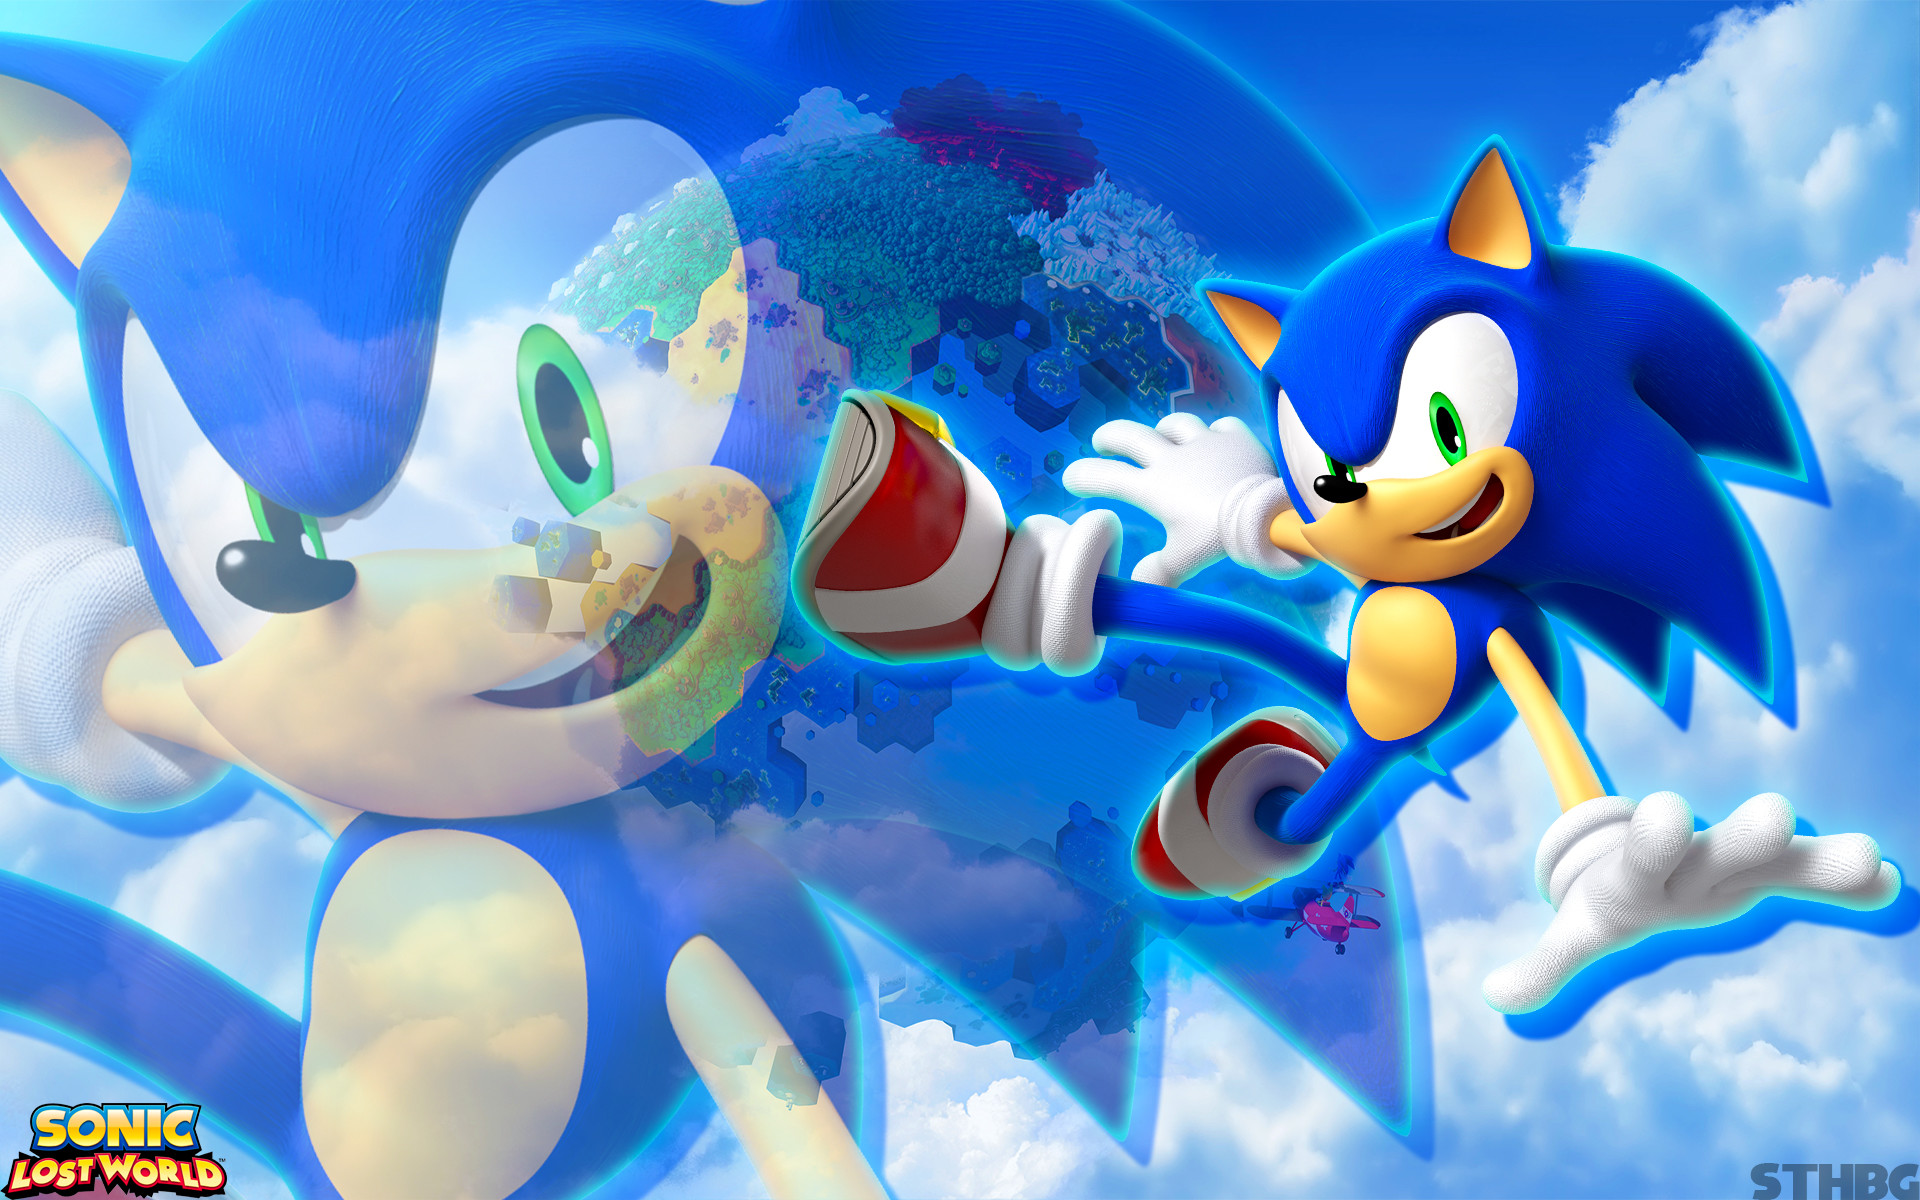 1920x1200 Sonic Lost World Wallpaper - Sonic by SonicTheHedgehogBG